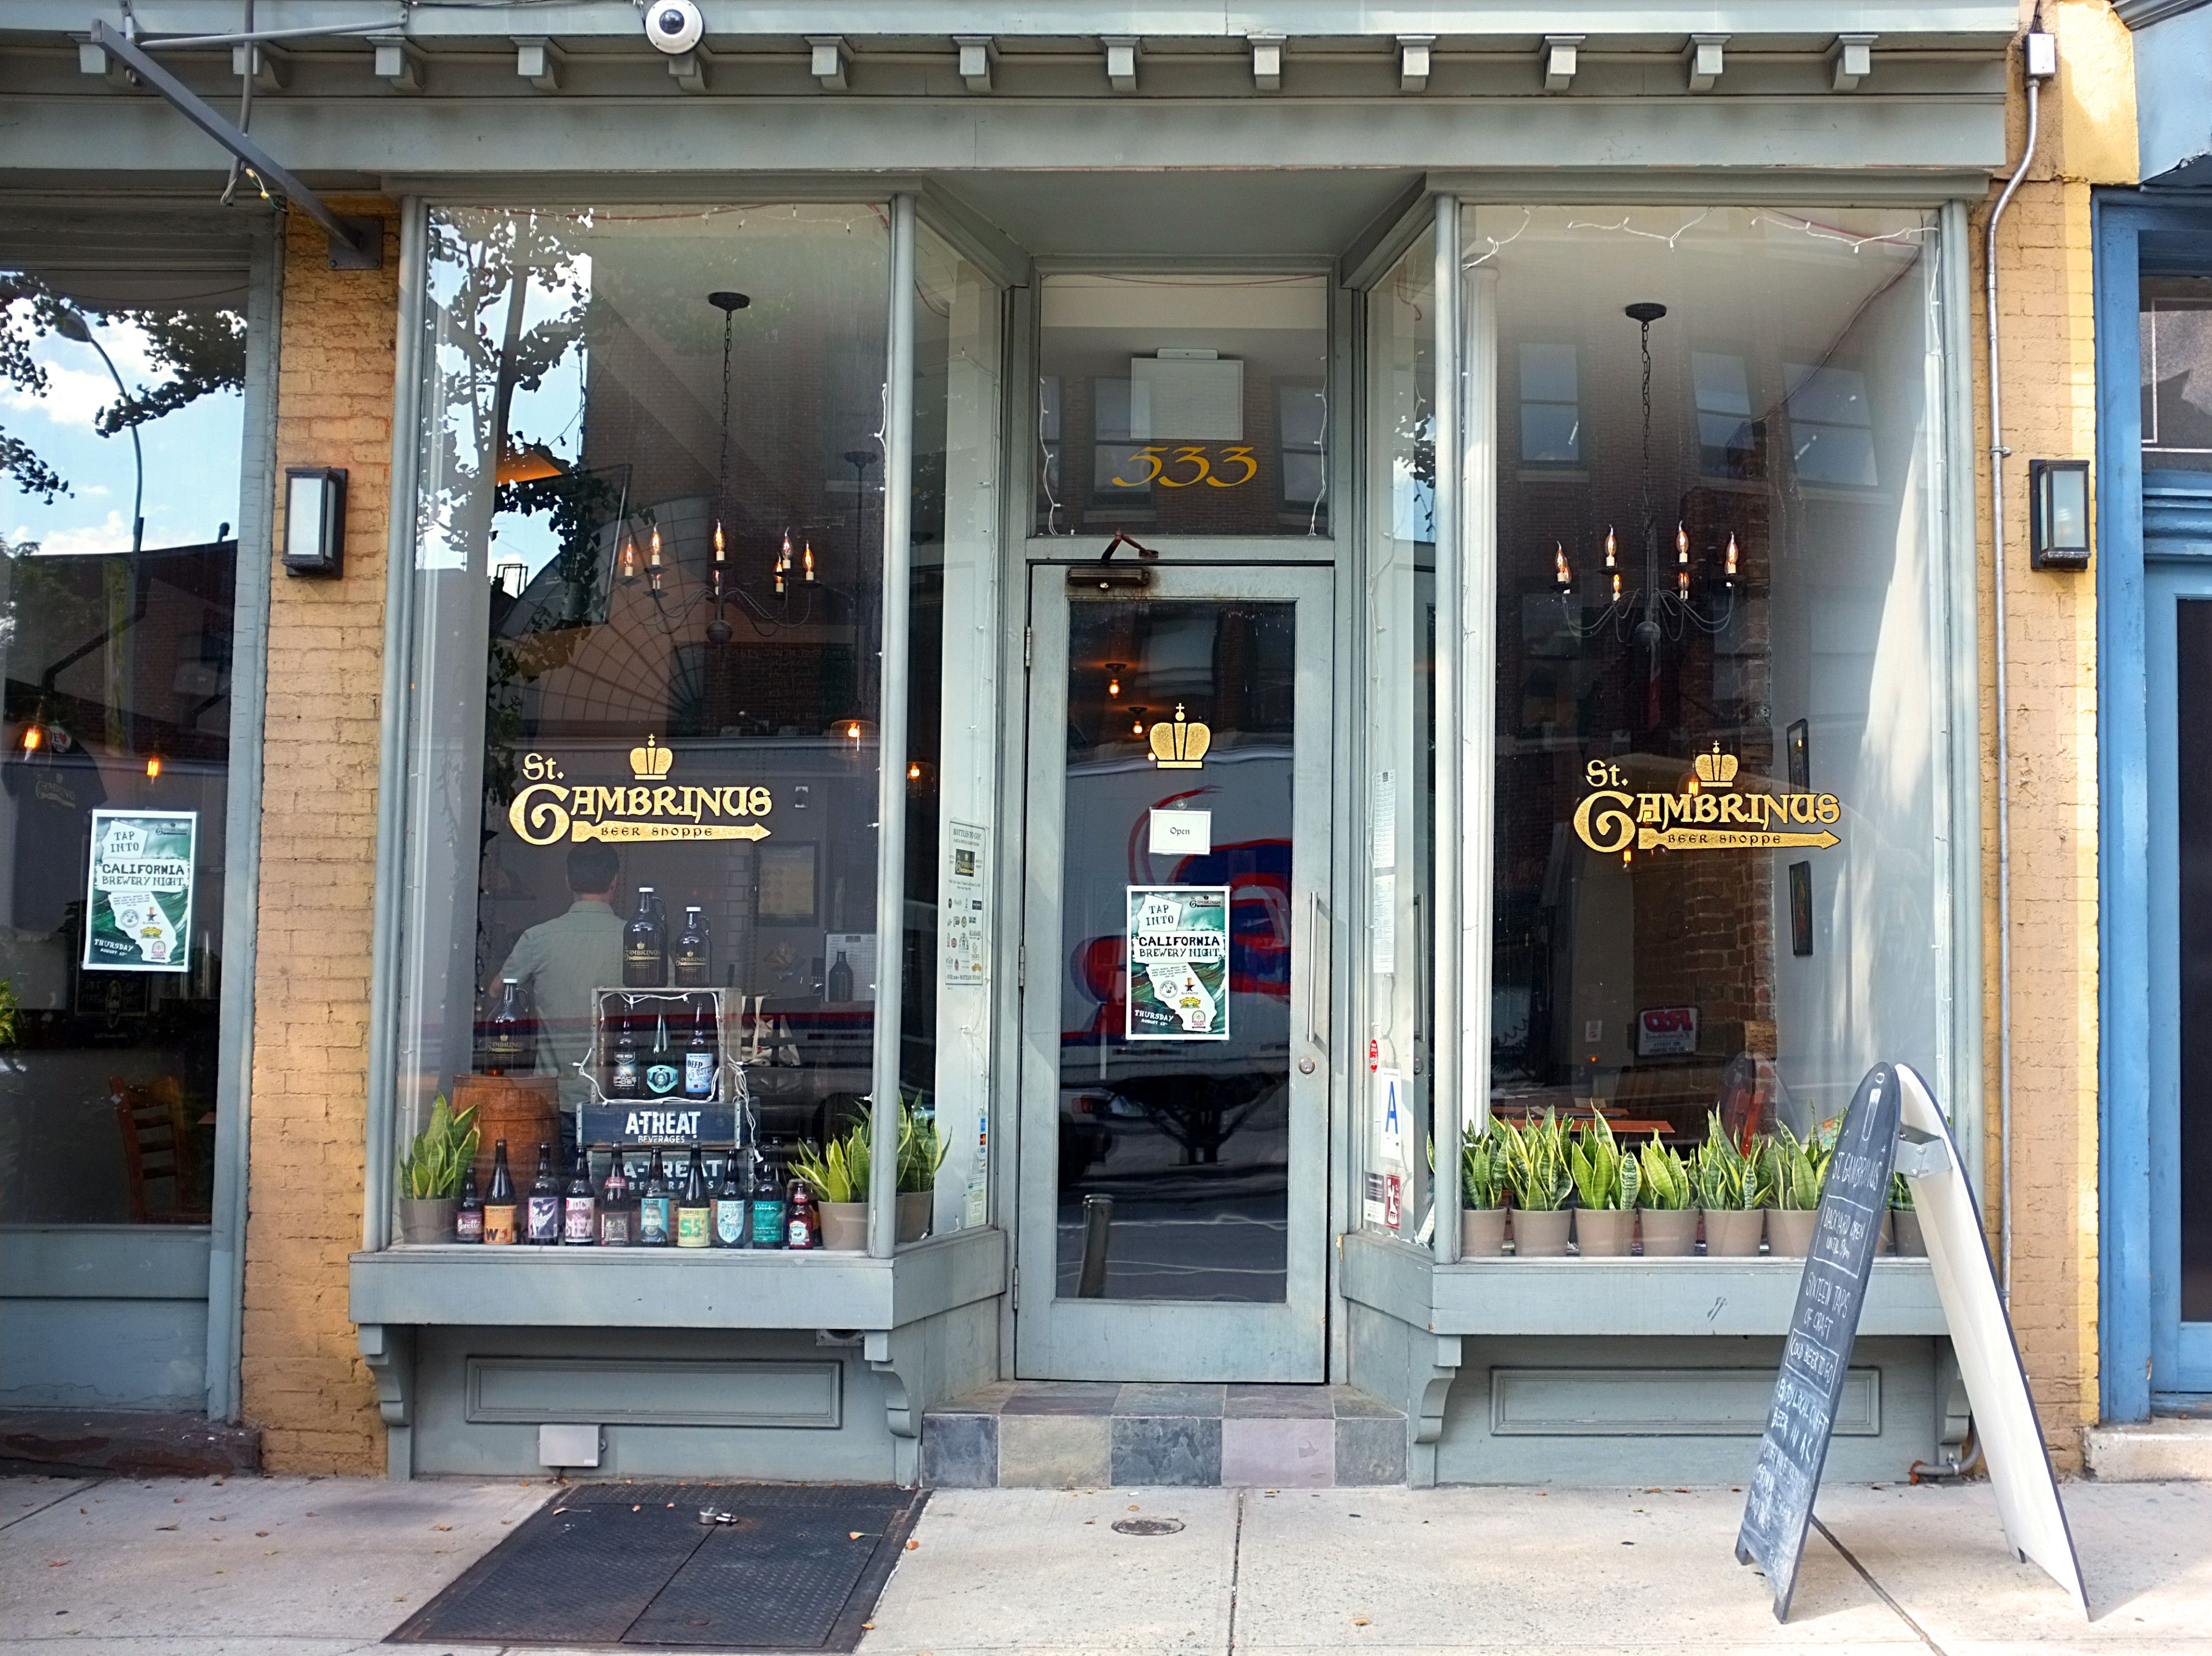 The storefront at St. Gambrinus